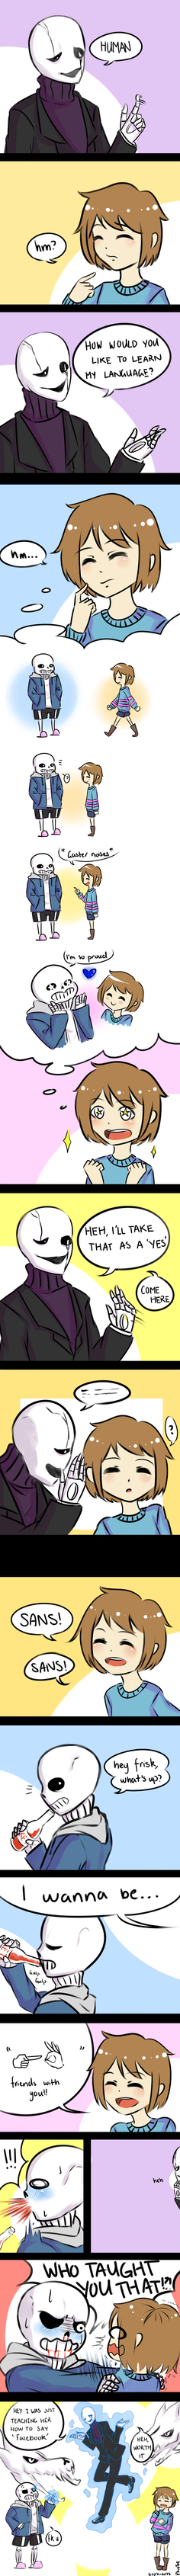 [ Undertale ] Terrible Influence by Soph-arts